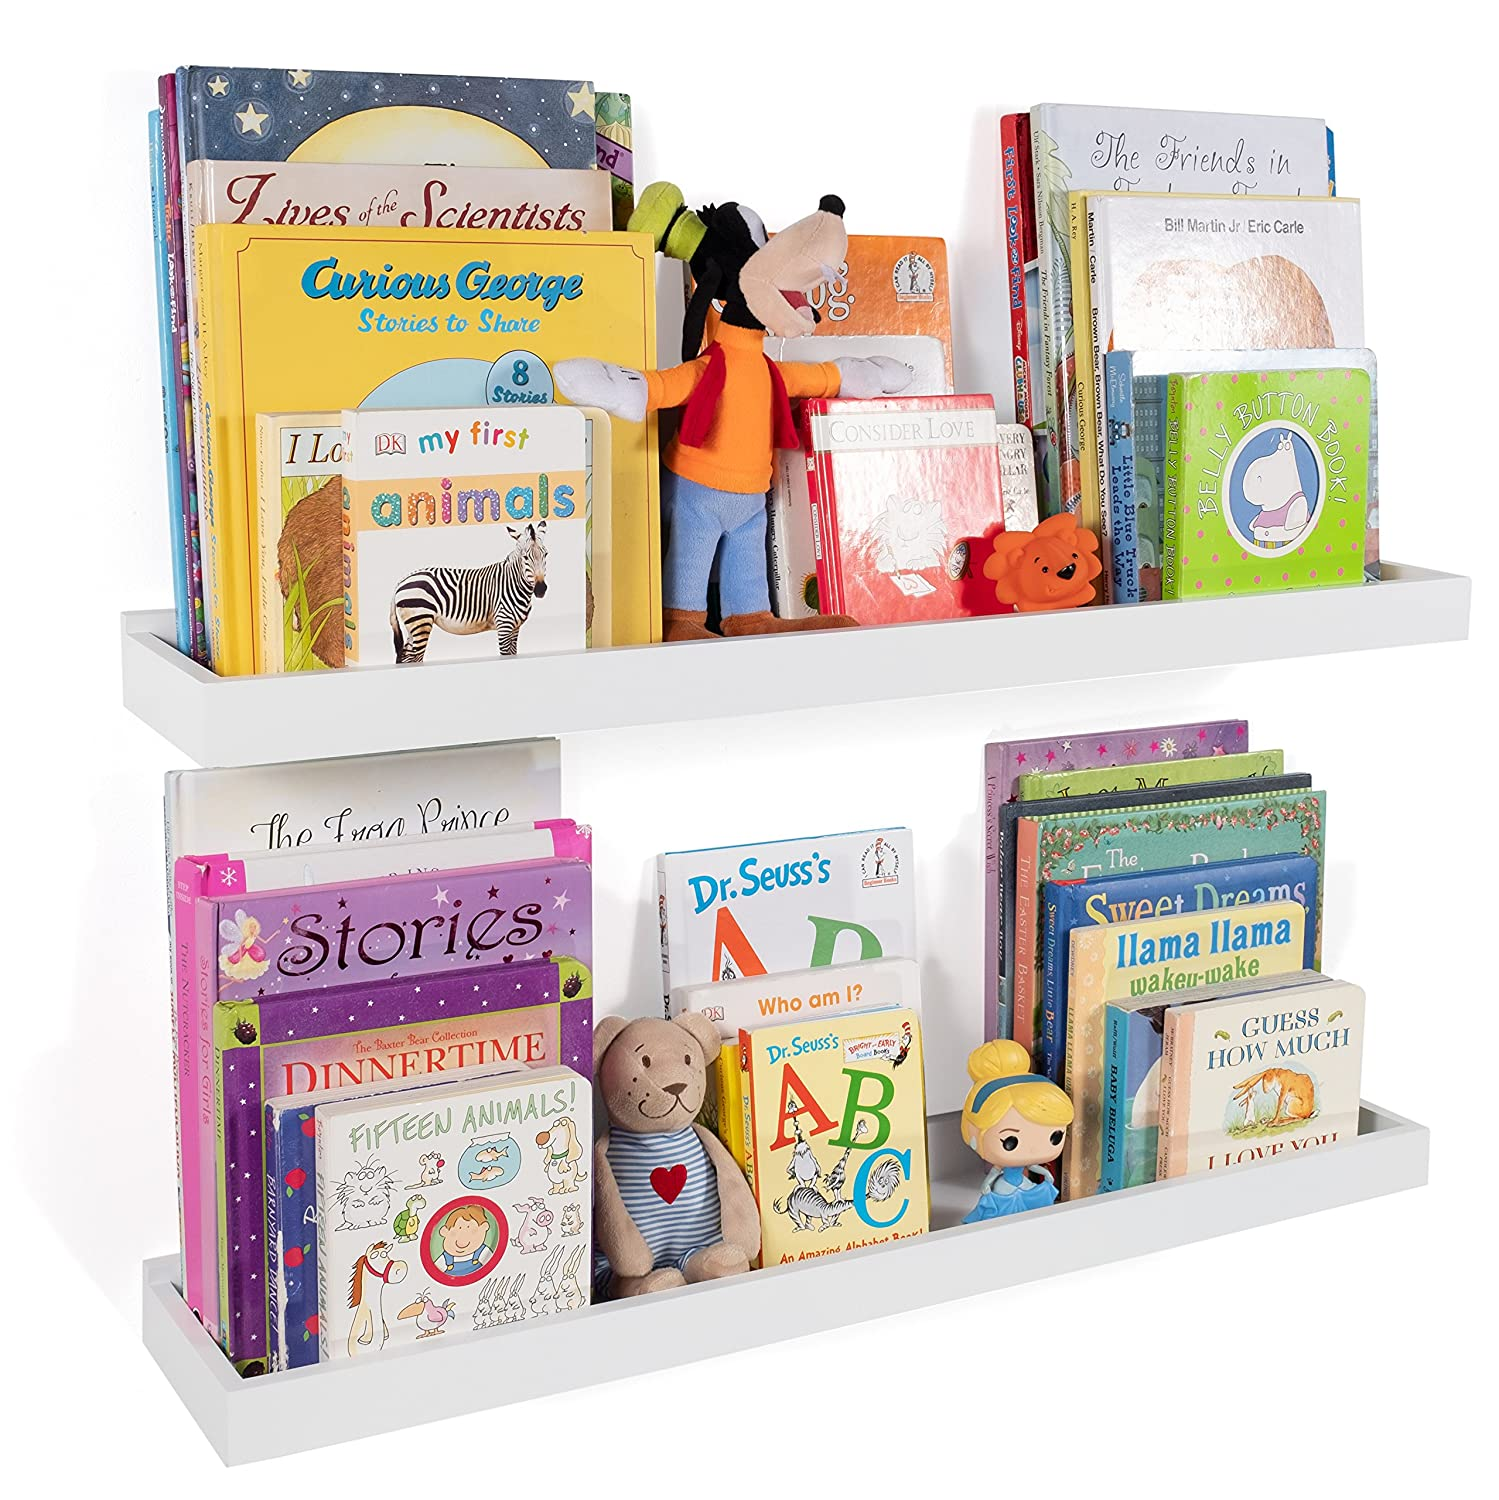 Amazon.com: Wallniture Philly Nursery Bookshelf   Floating Book Shelves For Kids  Room   31 Inch Picture Ledge Book Tray Toy Storage Display White Set Of 2:  ...